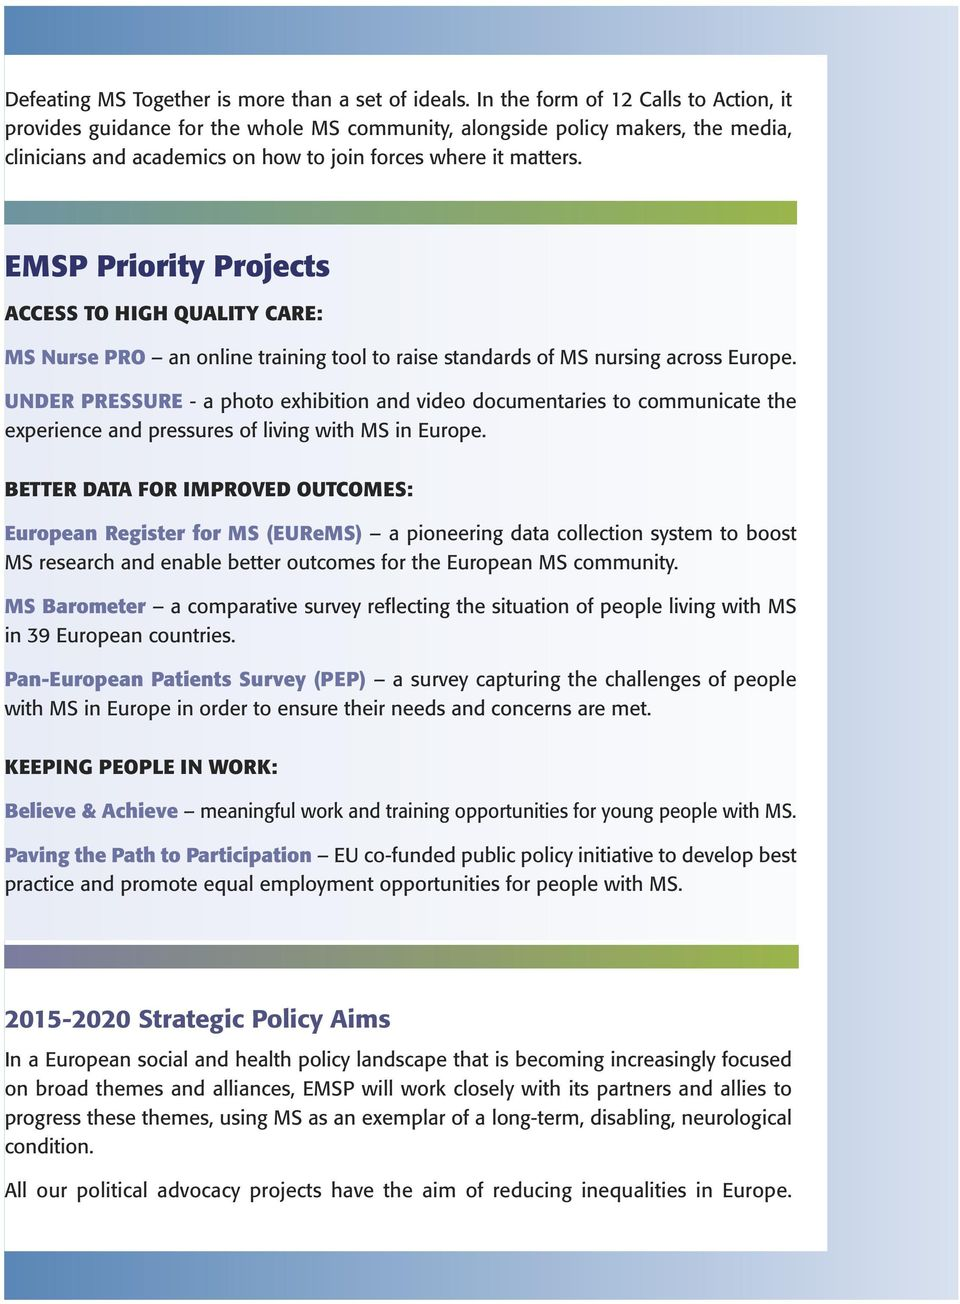 EMPS EMSP Priority Priority Projects Projects ACCESS TO HIGH QUALITY CARE: ACCESS TO HIGH QUALITY CARE: MS Nurse PRO an online training tool to raise standards of MS nursing across Europe.